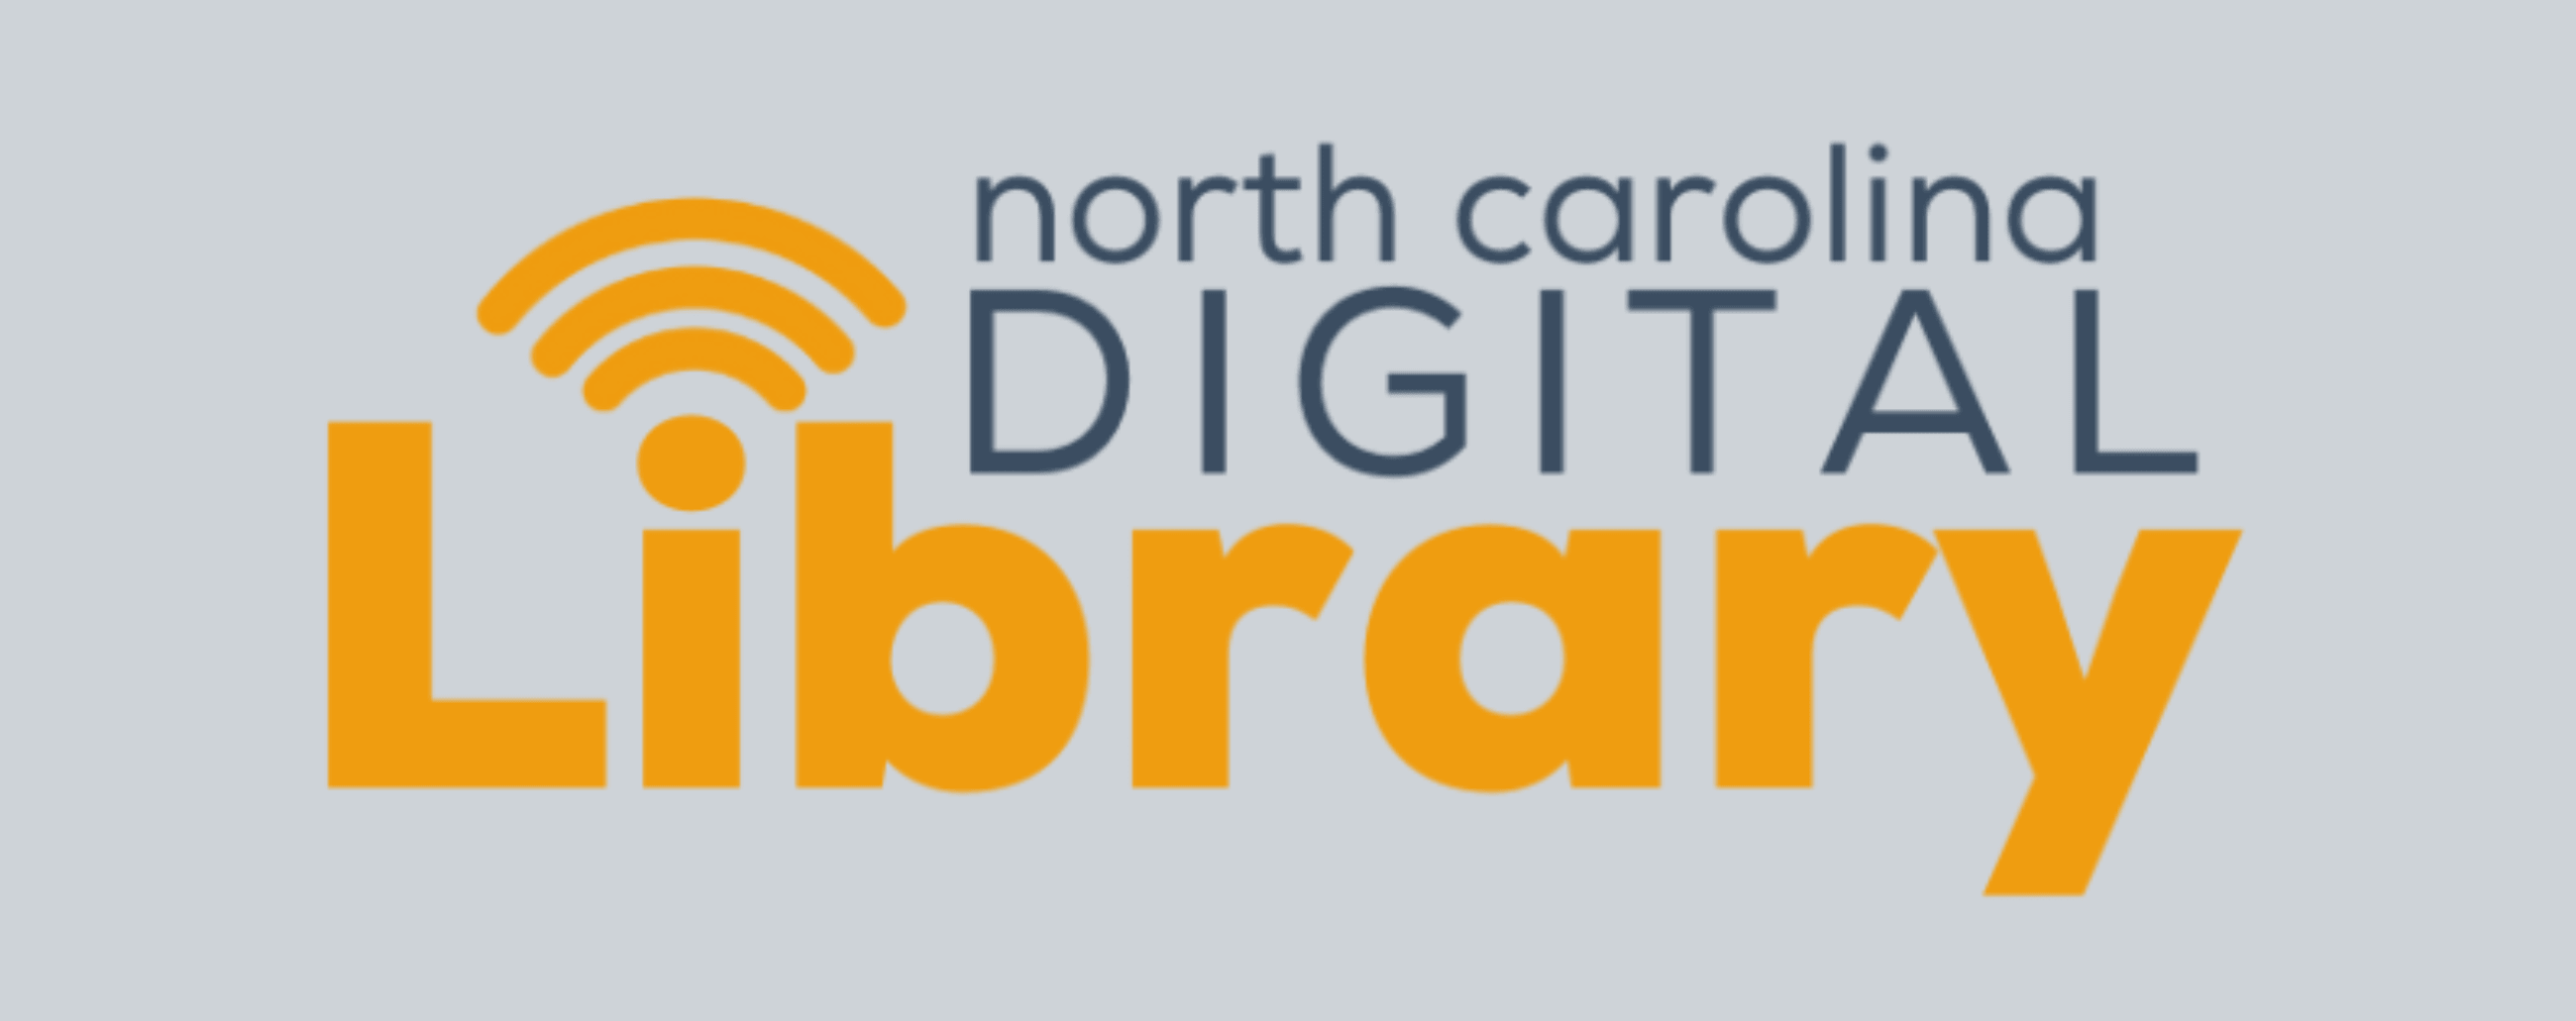 North Carolina Digital Library Opens in new window